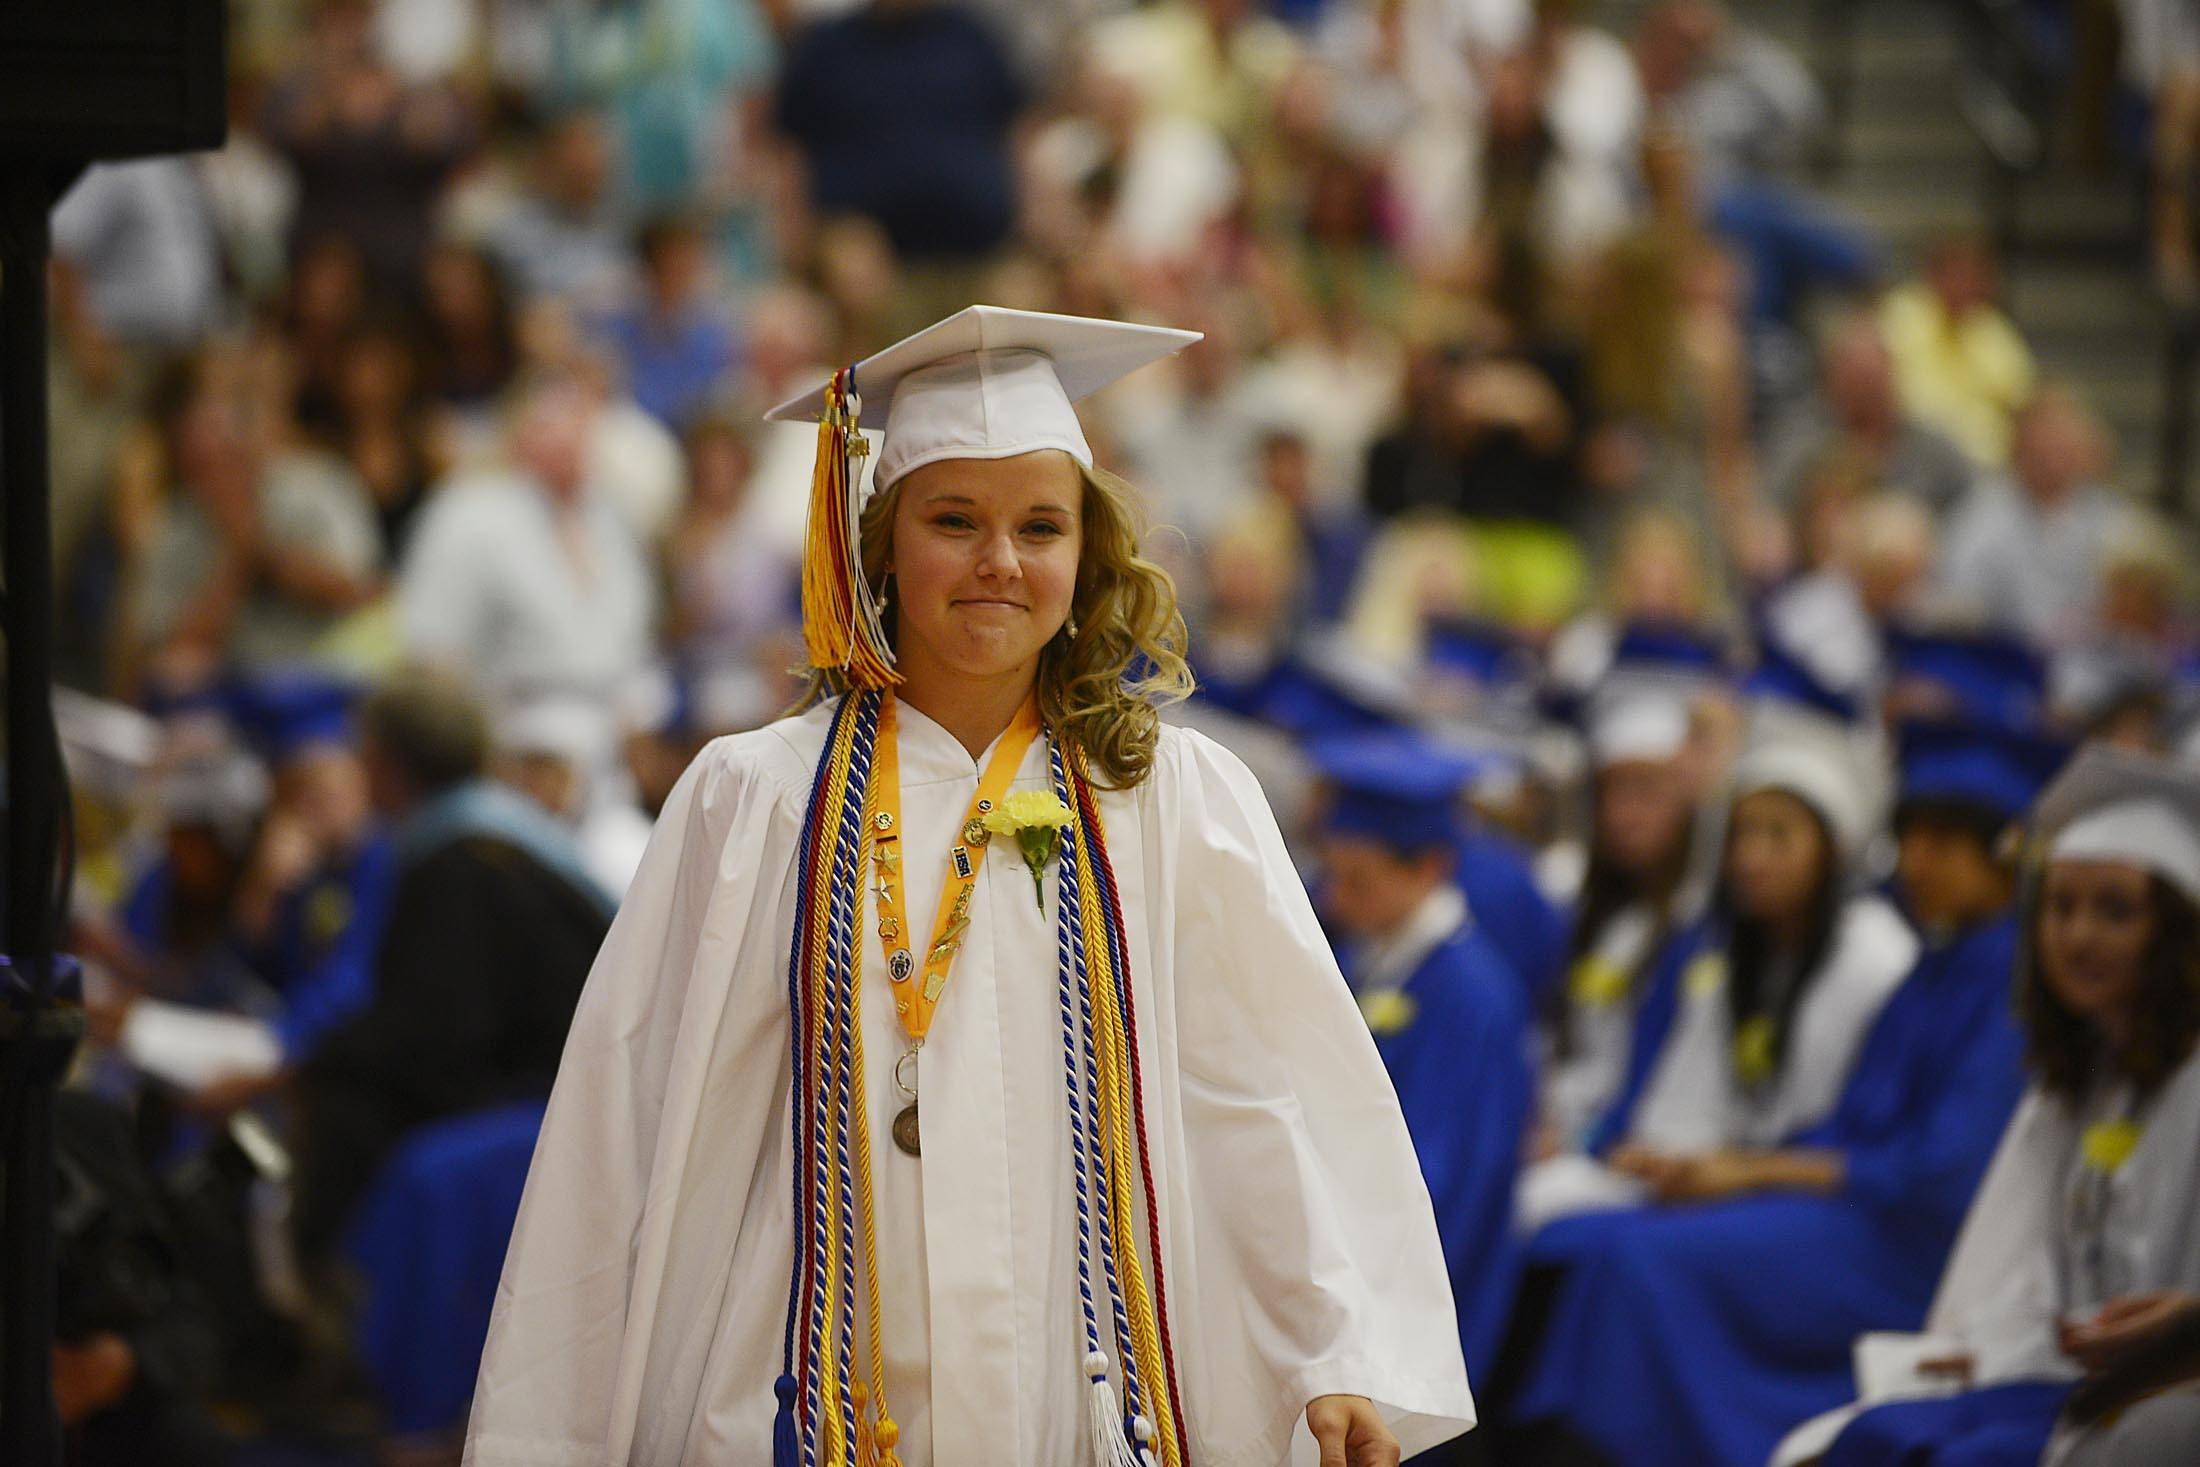 President of the Class of 2014, Hallie McQueeny, approaches the podium to present the graduates at the Geneva High School 2014 commencement exercises Sunday.